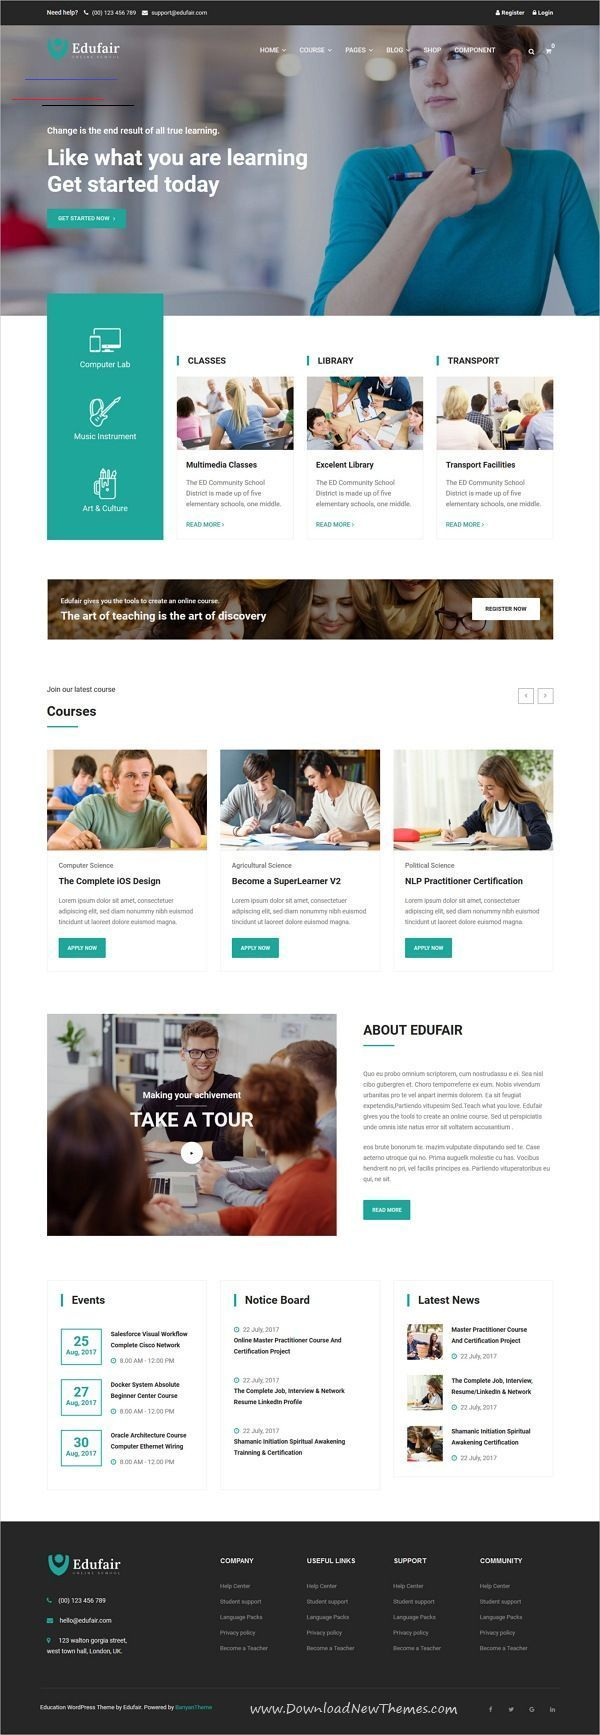 Education Design Edufair Is Clean And Modern Design 6in1 Responsive Bootstrap Html5 Template For College In 2020 Web Design School Education Design Web Design Tips